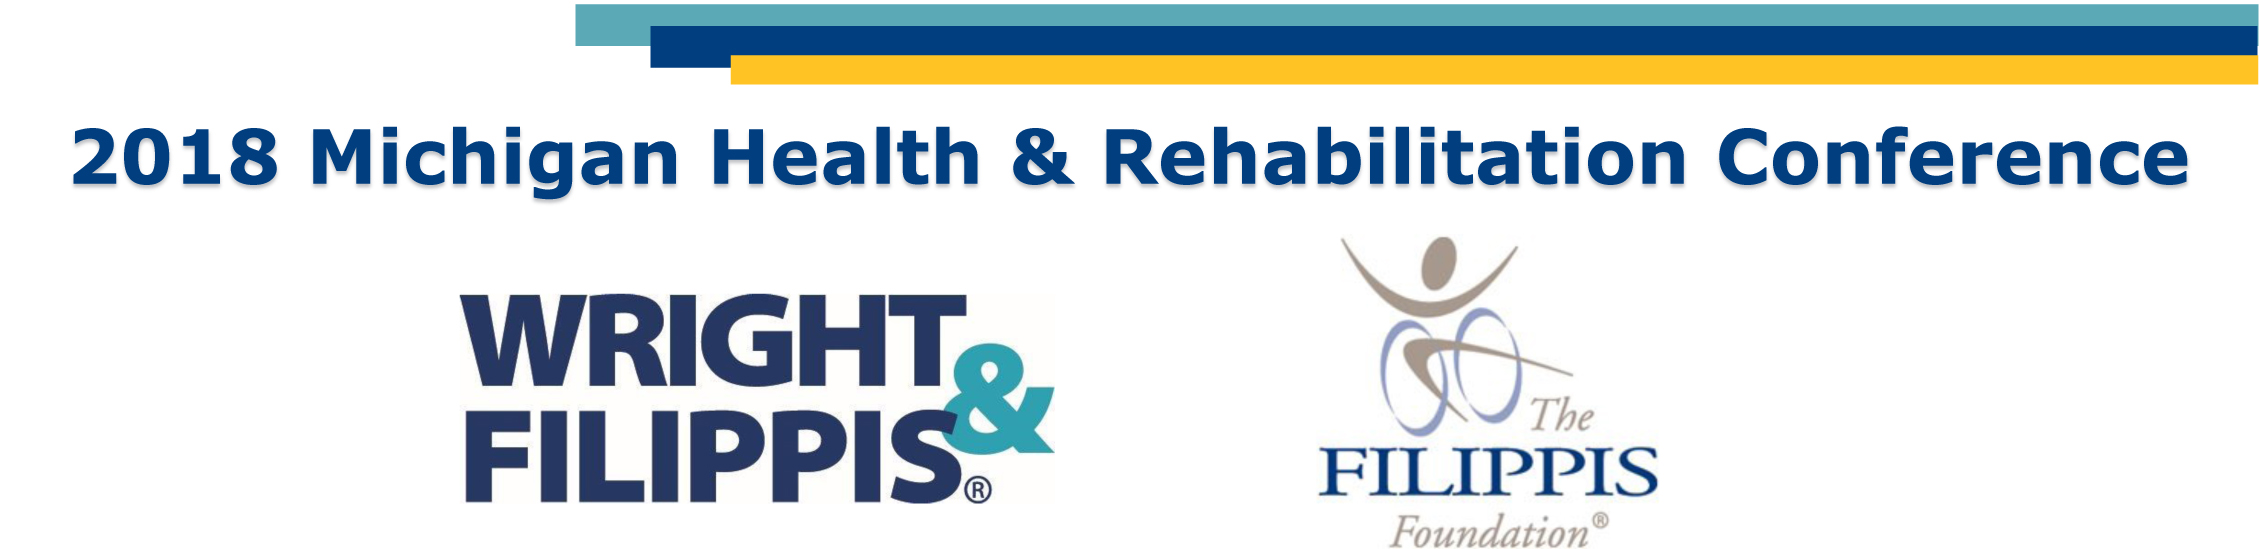 2018 Michigan Health & Rehabilitation Conference